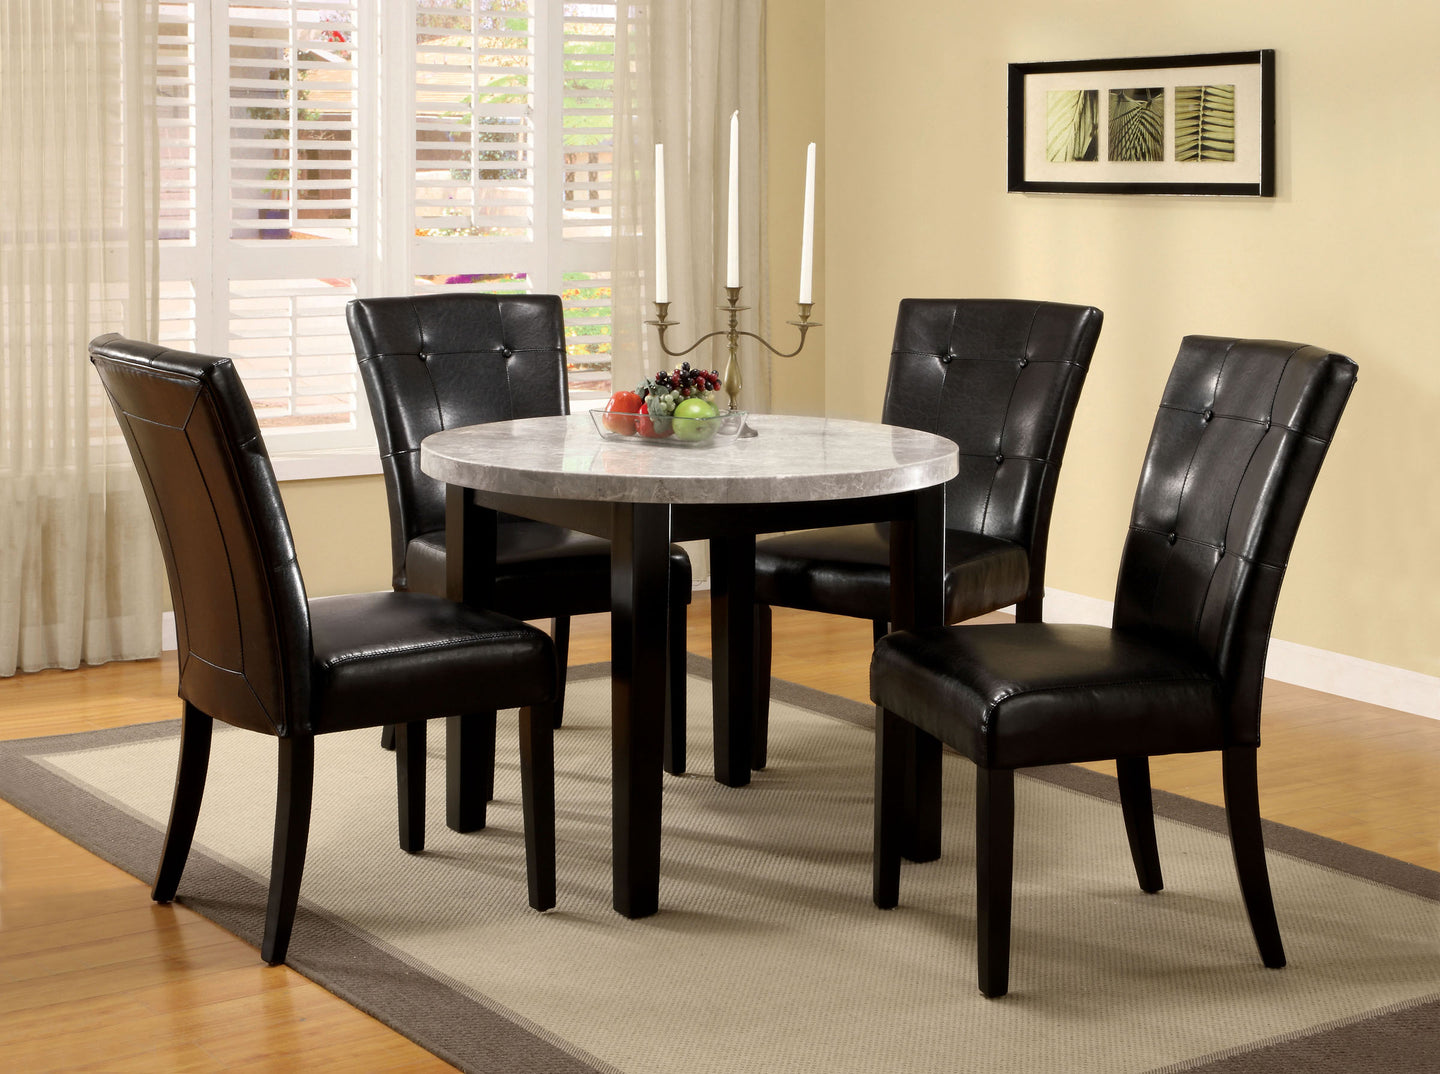 Furniture Of America Marion I Espresso Marble Top Finish 5 Piece Round Dining Table Set